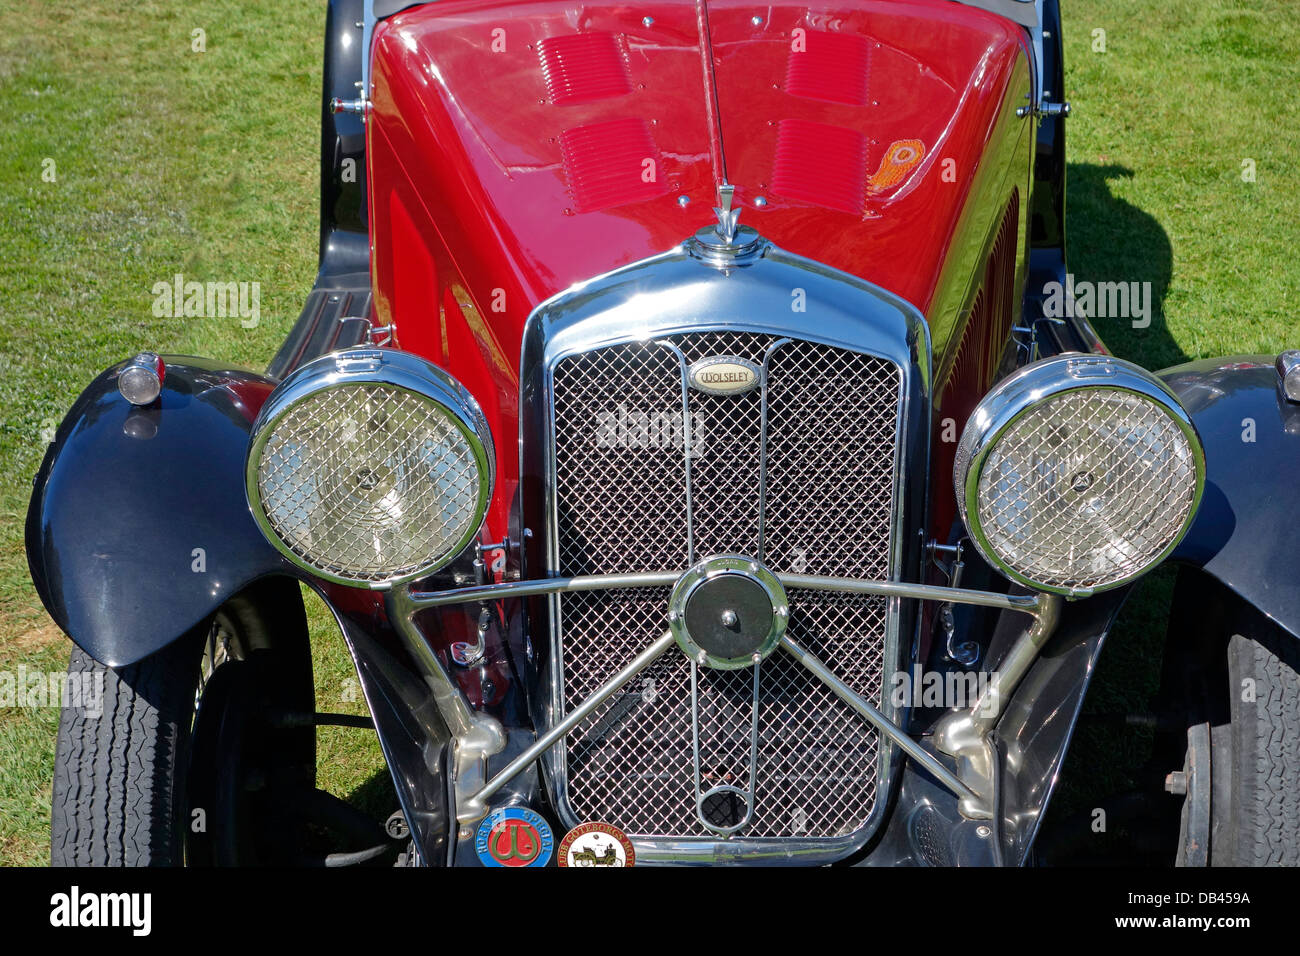 Front view of an antique automobile. - Stock Image